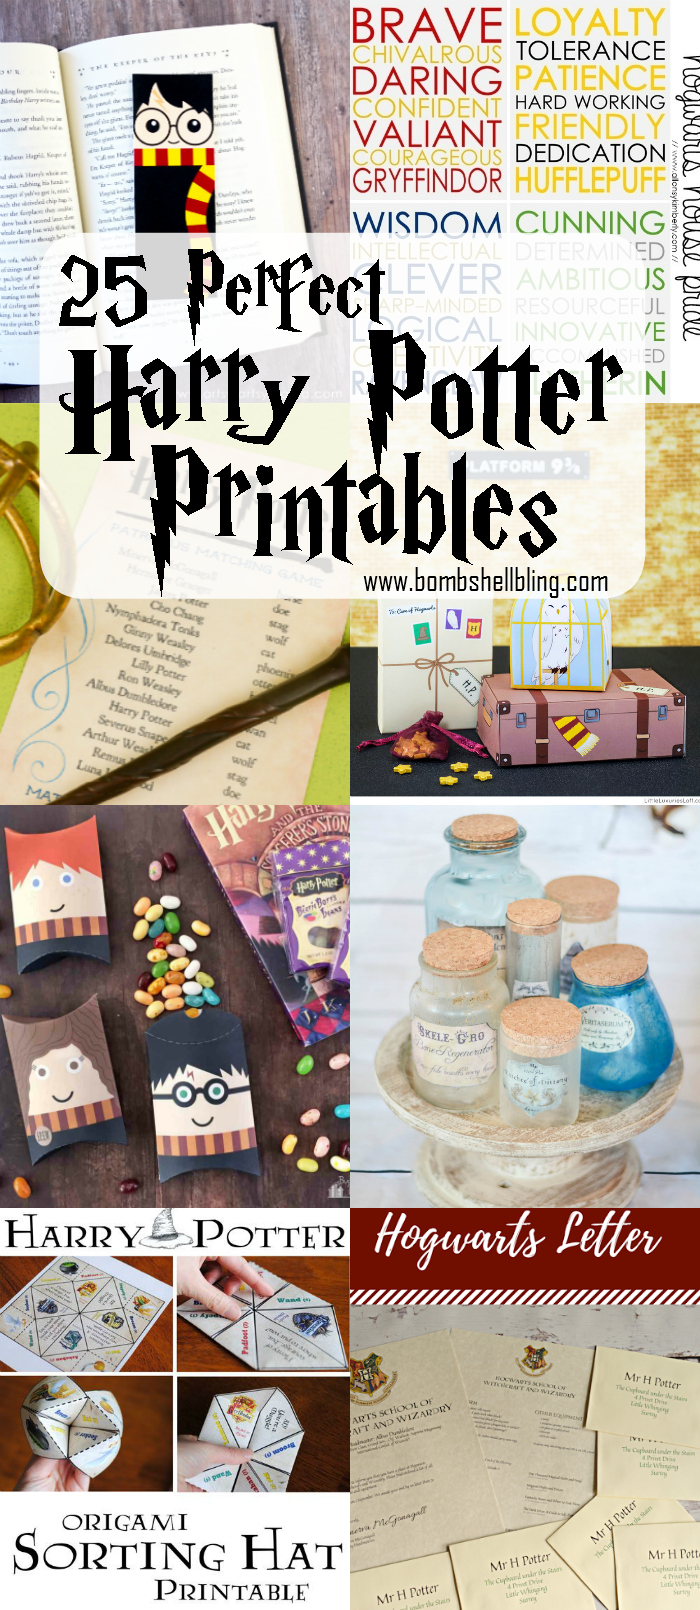 25 Perfect Harry Potter Printables Collected By Bombshell Bling